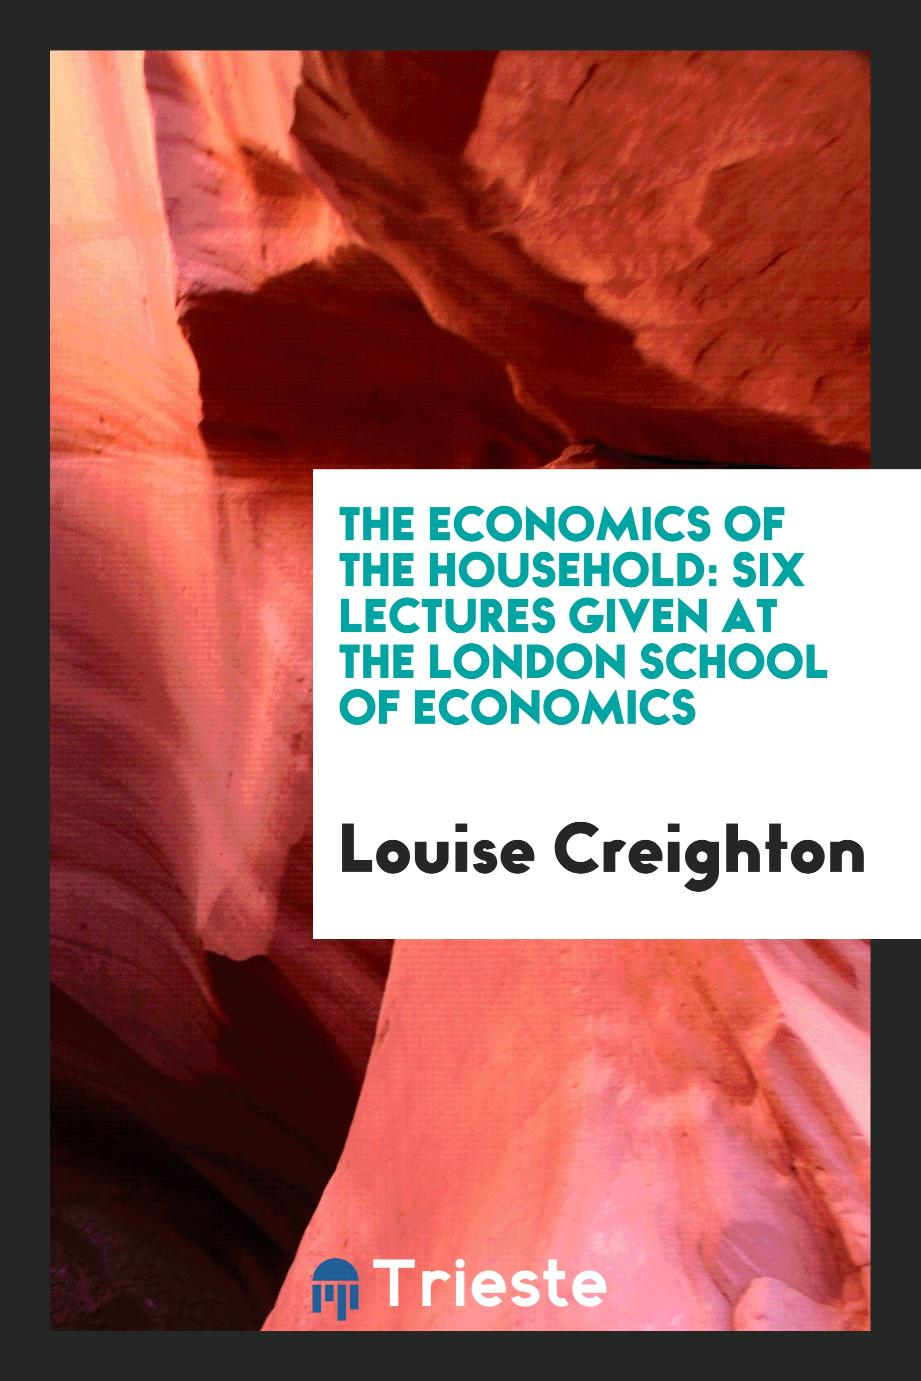 The Economics of the Household: Six Lectures given at the London School of Economics